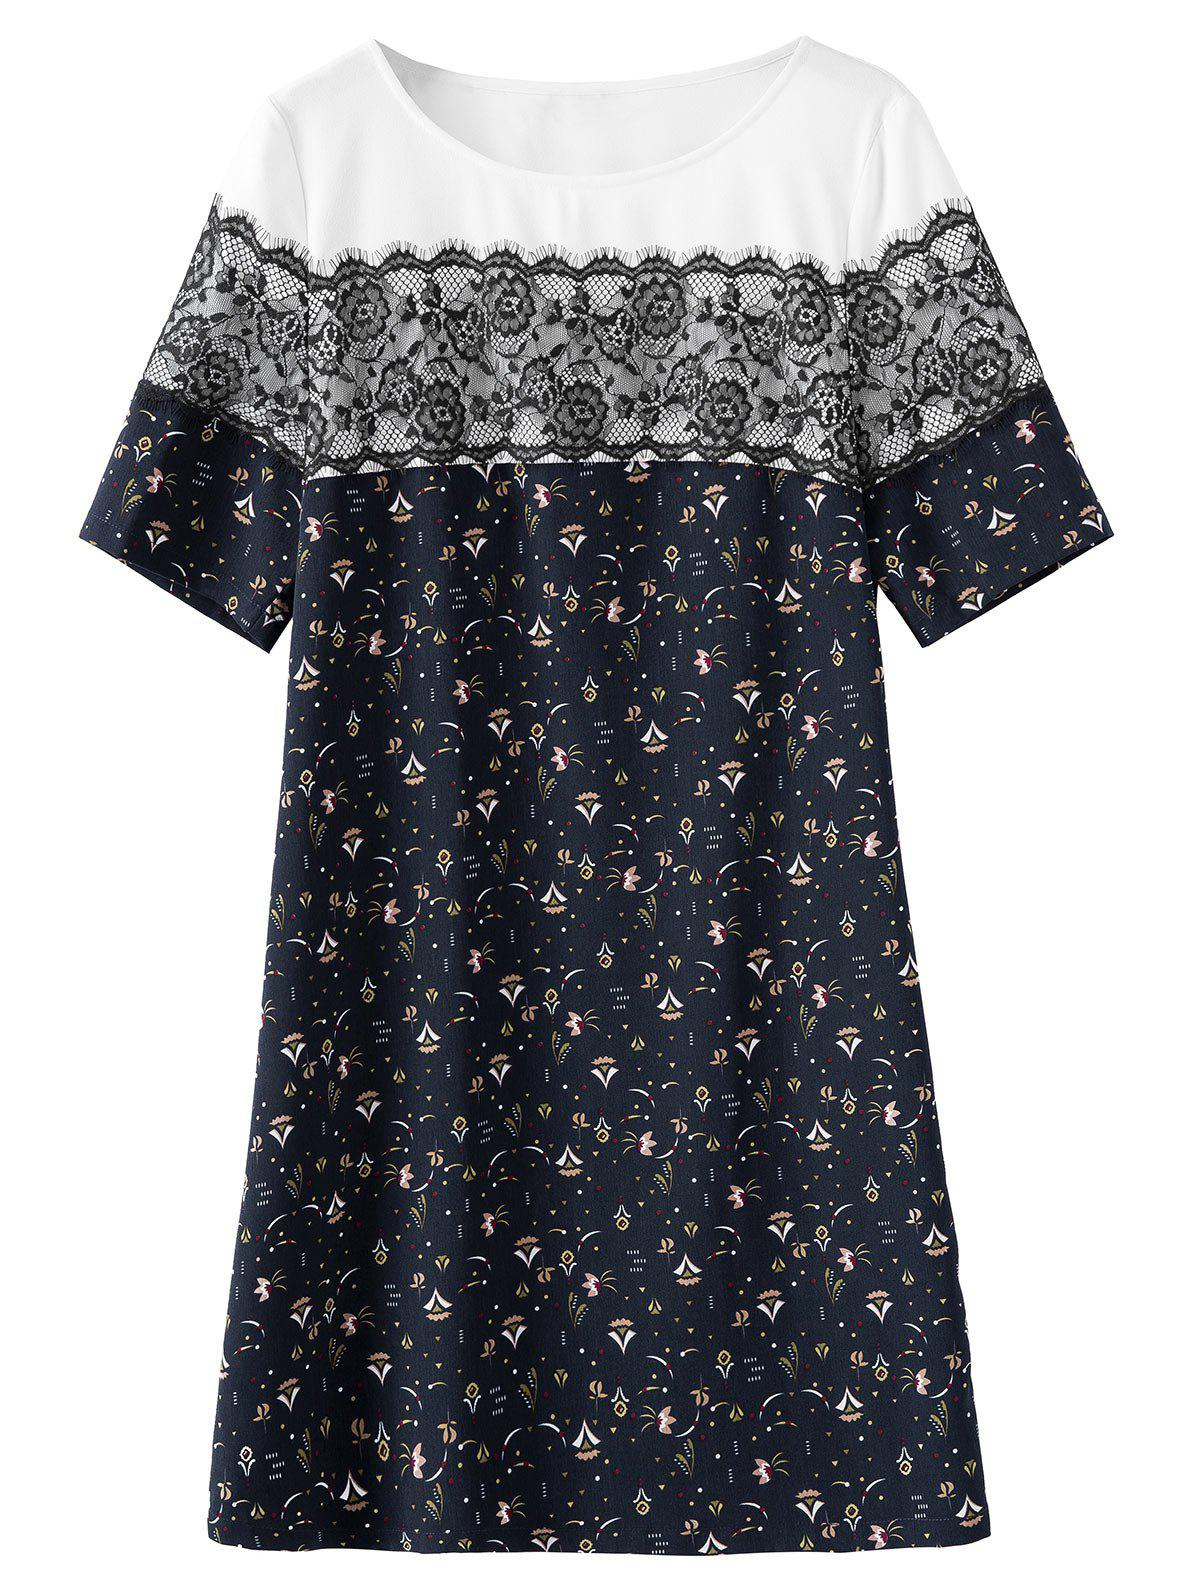 Lace Trim Plus Size Print Dress - PURPLISH BLUE 4XL